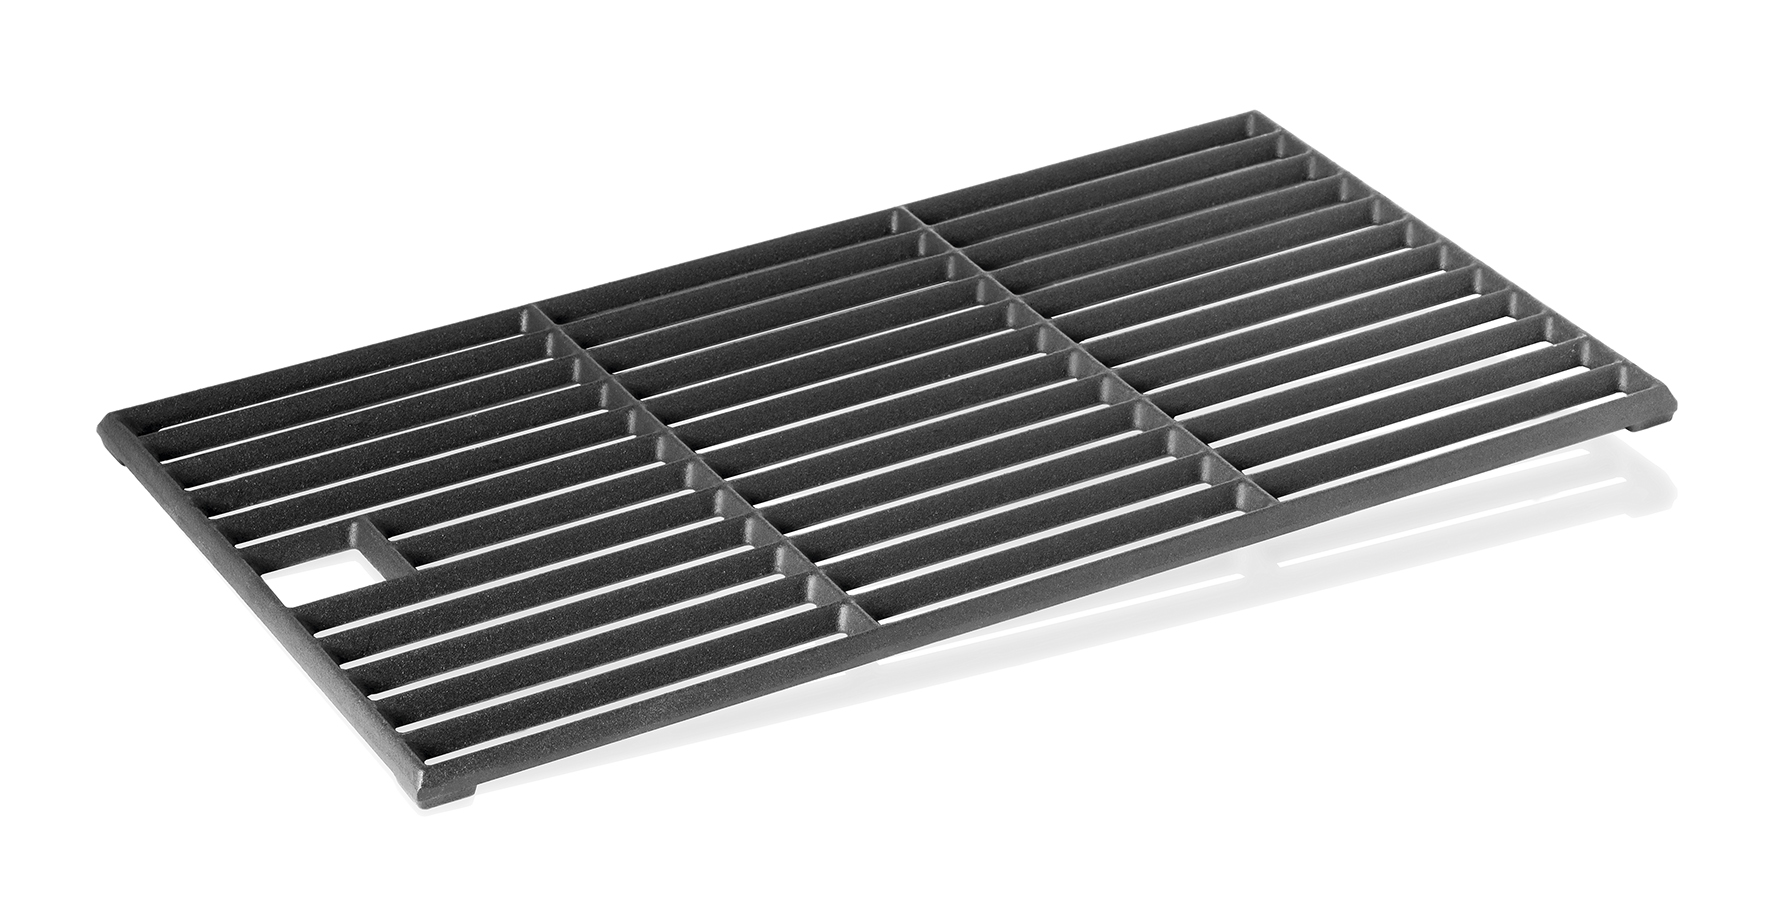 Enders Gasgrill Illinois : Enders grill online kaufen bei obi